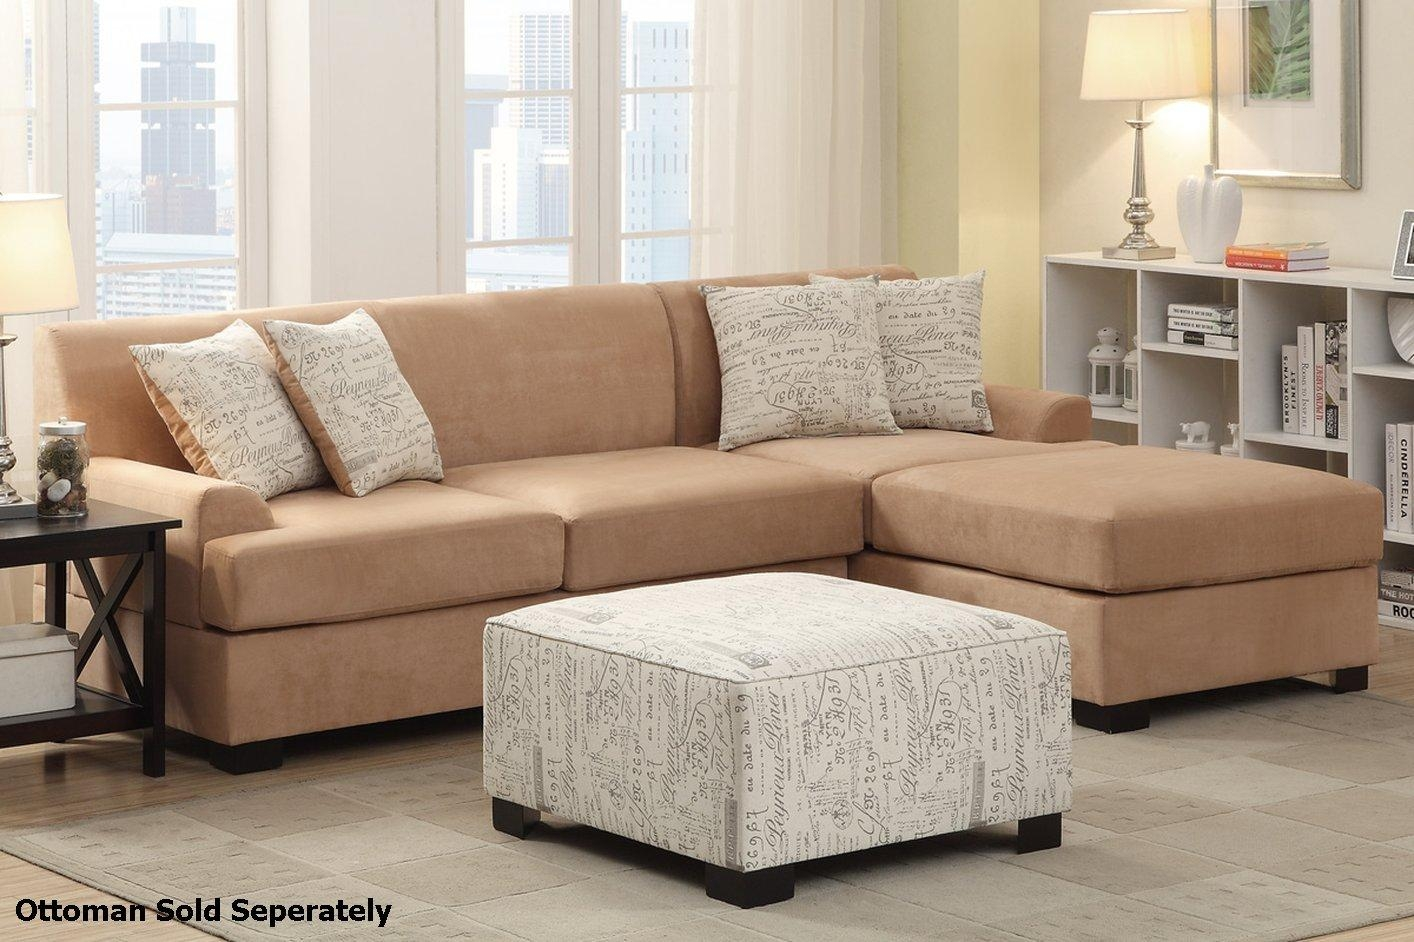 Sofas Center : Phenomenal Seat Sectional Sofa Image Ideas For Inside 2 Seat Sectional Sofas (Image 13 of 15)